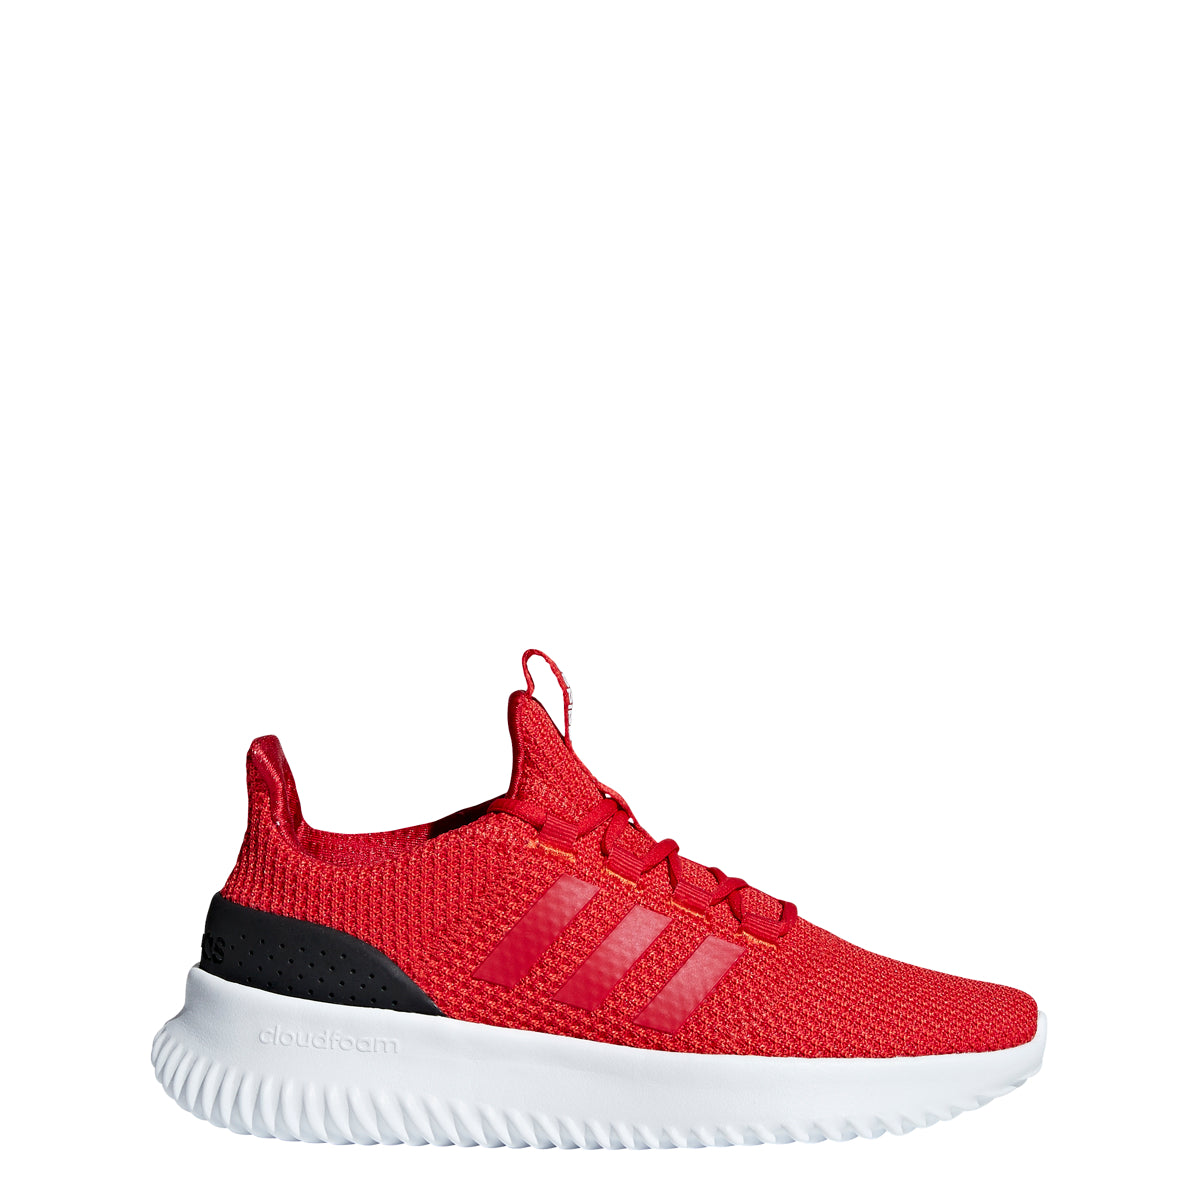 adidas Hi-Res Red Cloudfoam Ultimate Sneaker